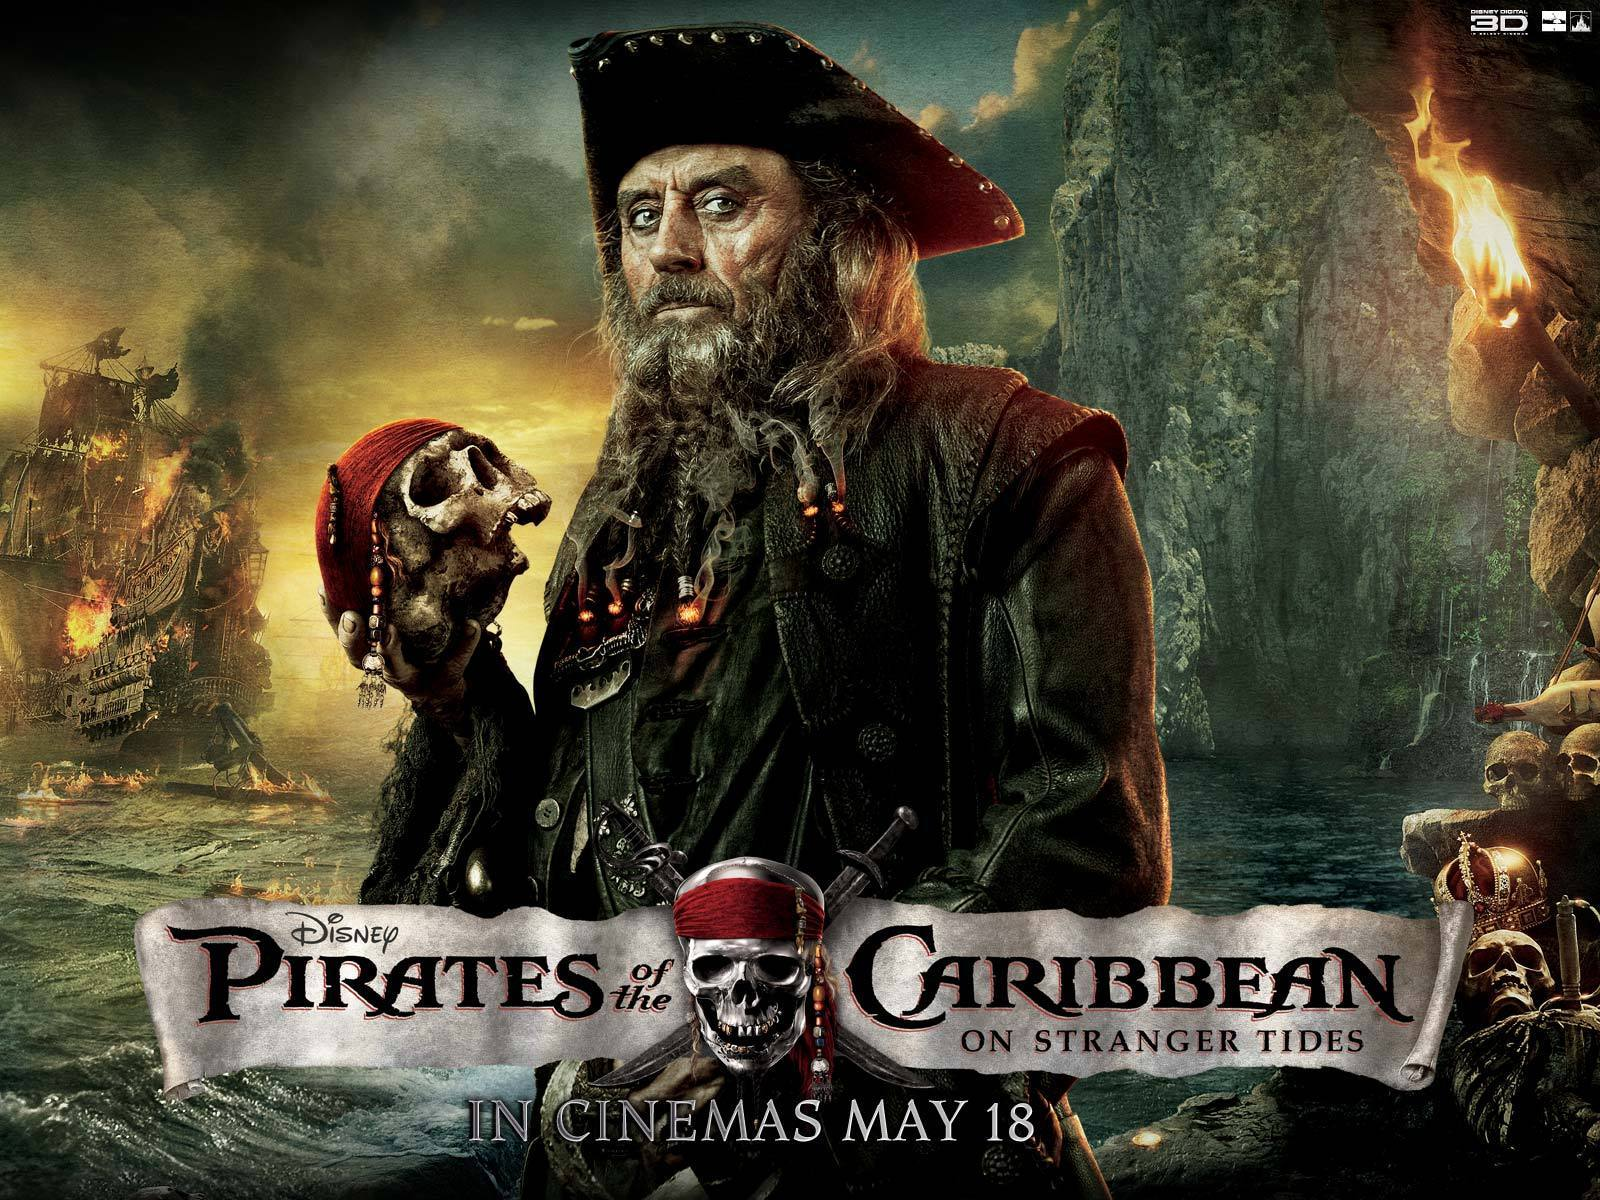 Upcoming movies pirates of the caribbean : on stranger tides (2011)